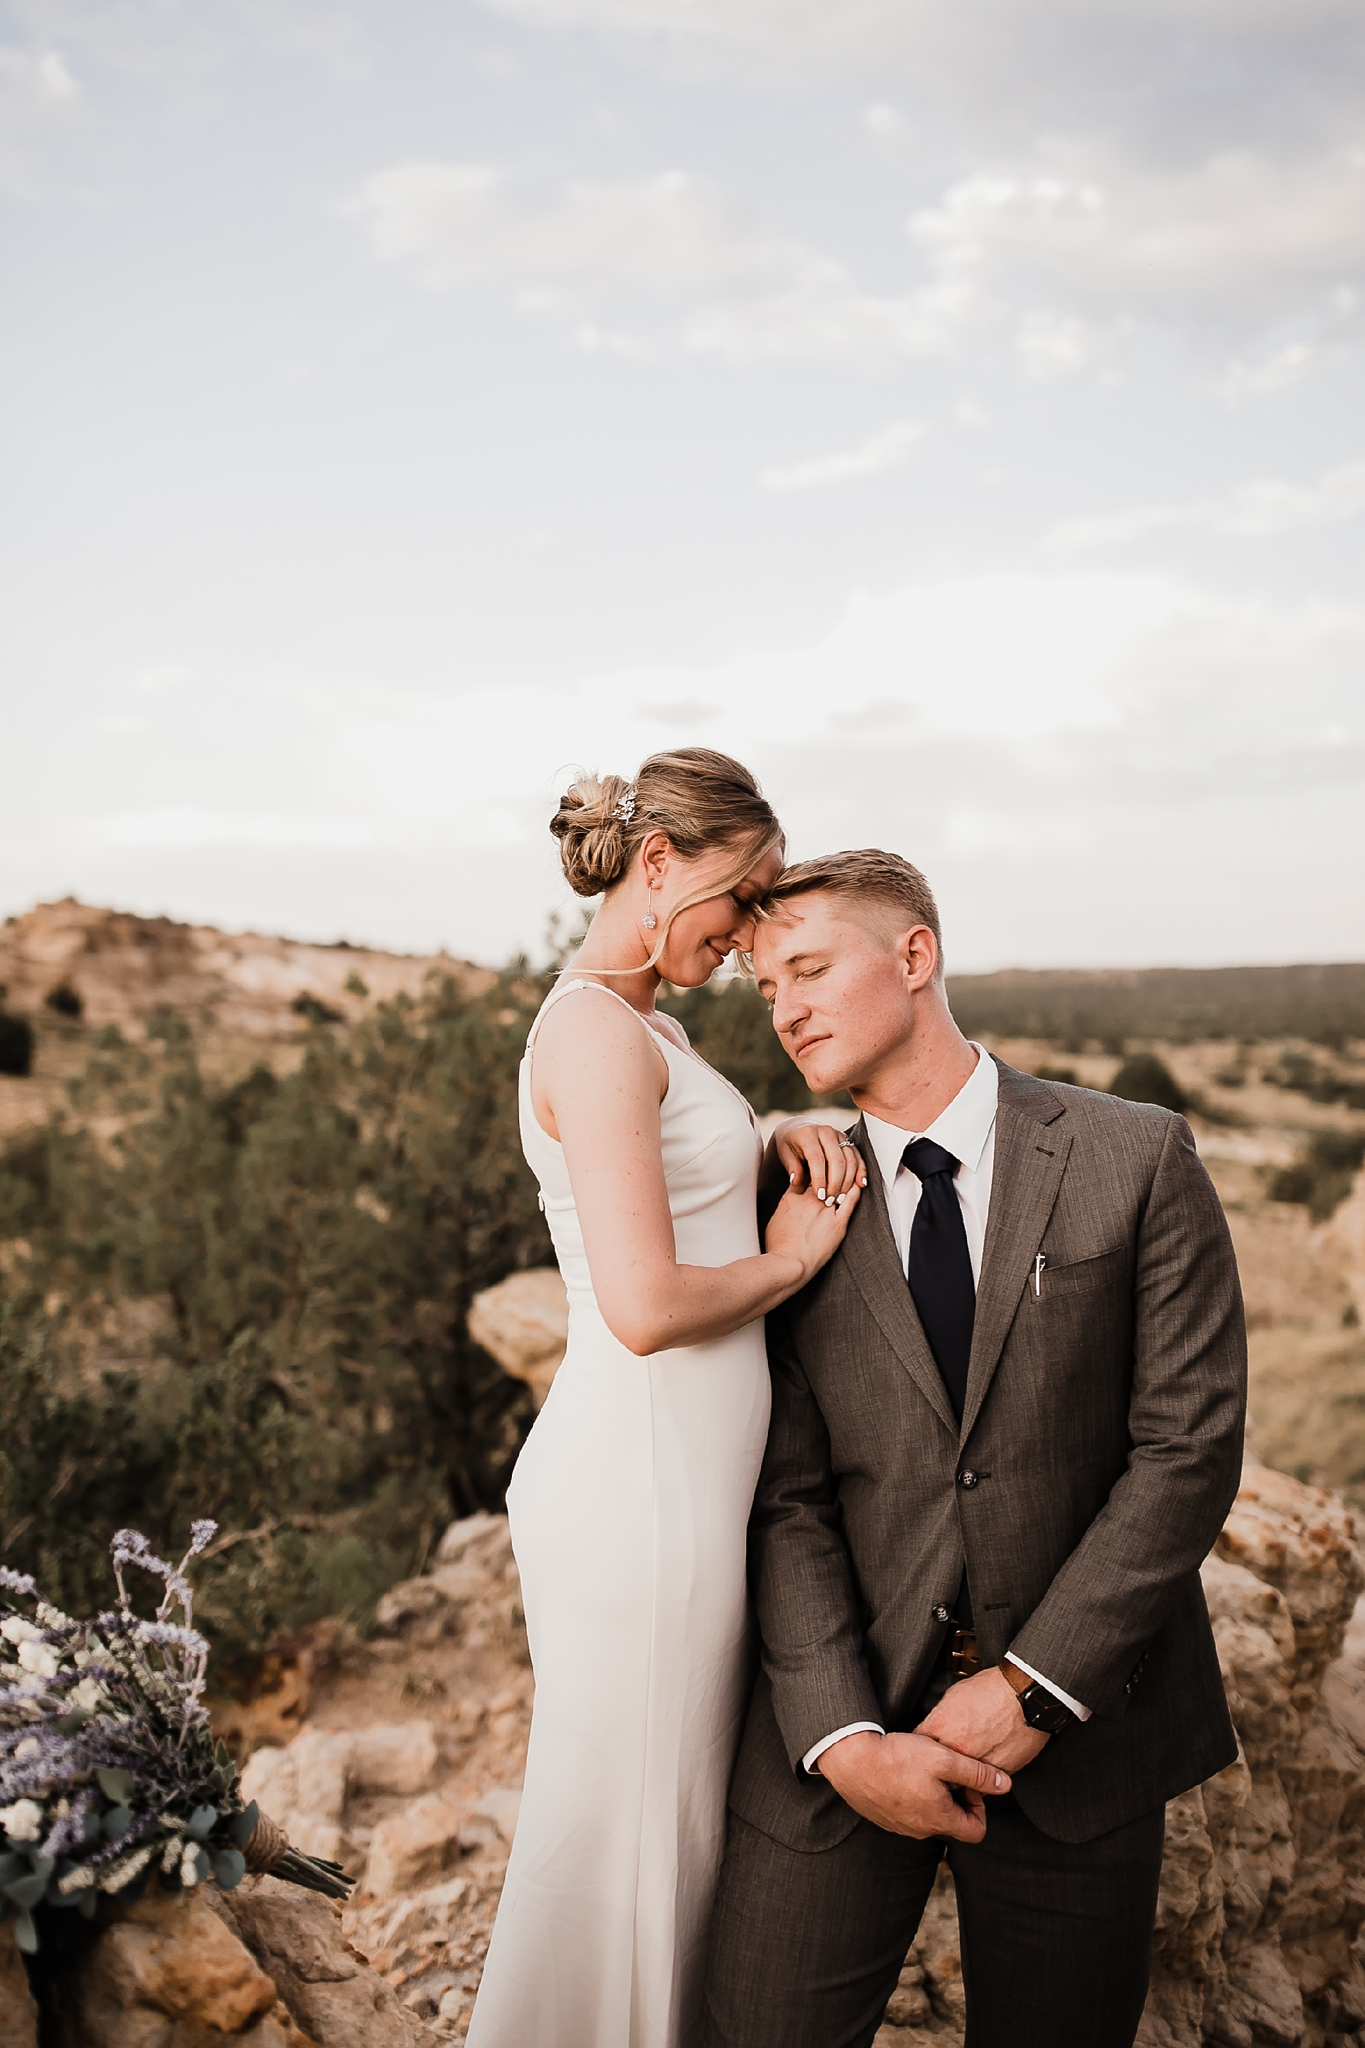 Alicia+lucia+photography+-+albuquerque+wedding+photographer+-+santa+fe+wedding+photography+-+new+mexico+wedding+photographer+-+new+mexico+wedding+-+new+mexico+elopement+-+elopment+-+mountain+elopement_0009.jpg